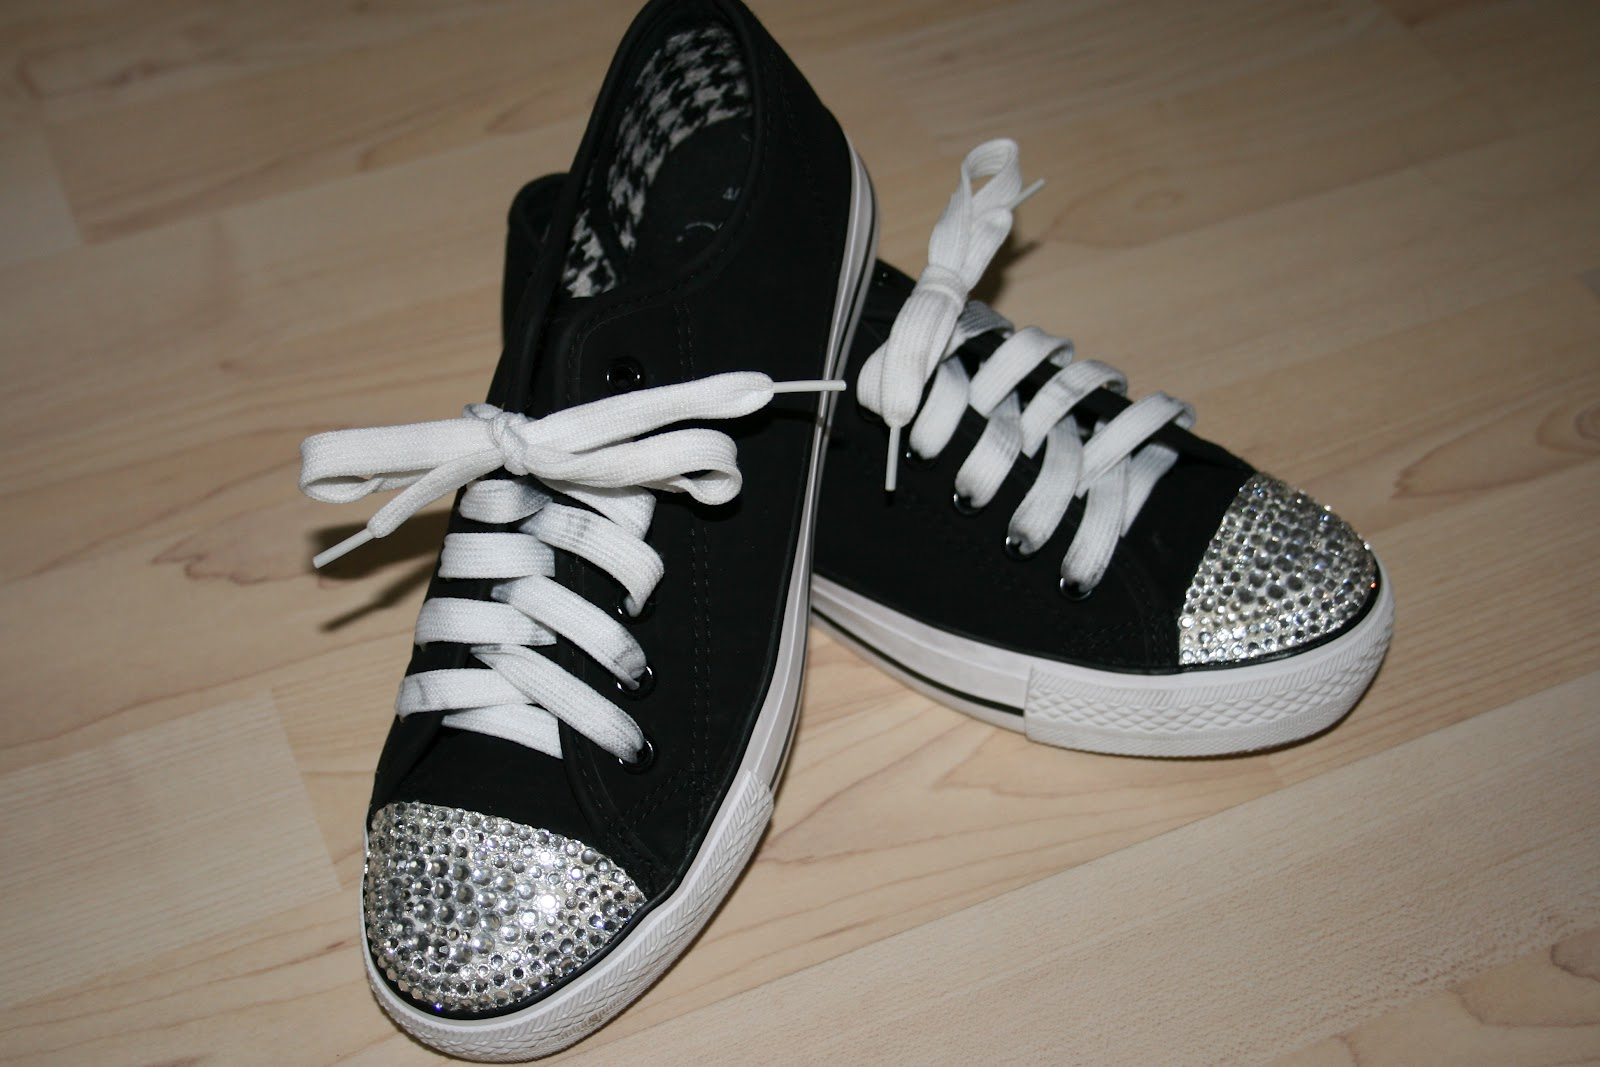 Converse Twinkle Toes Twinkle Toes | How to Crystal